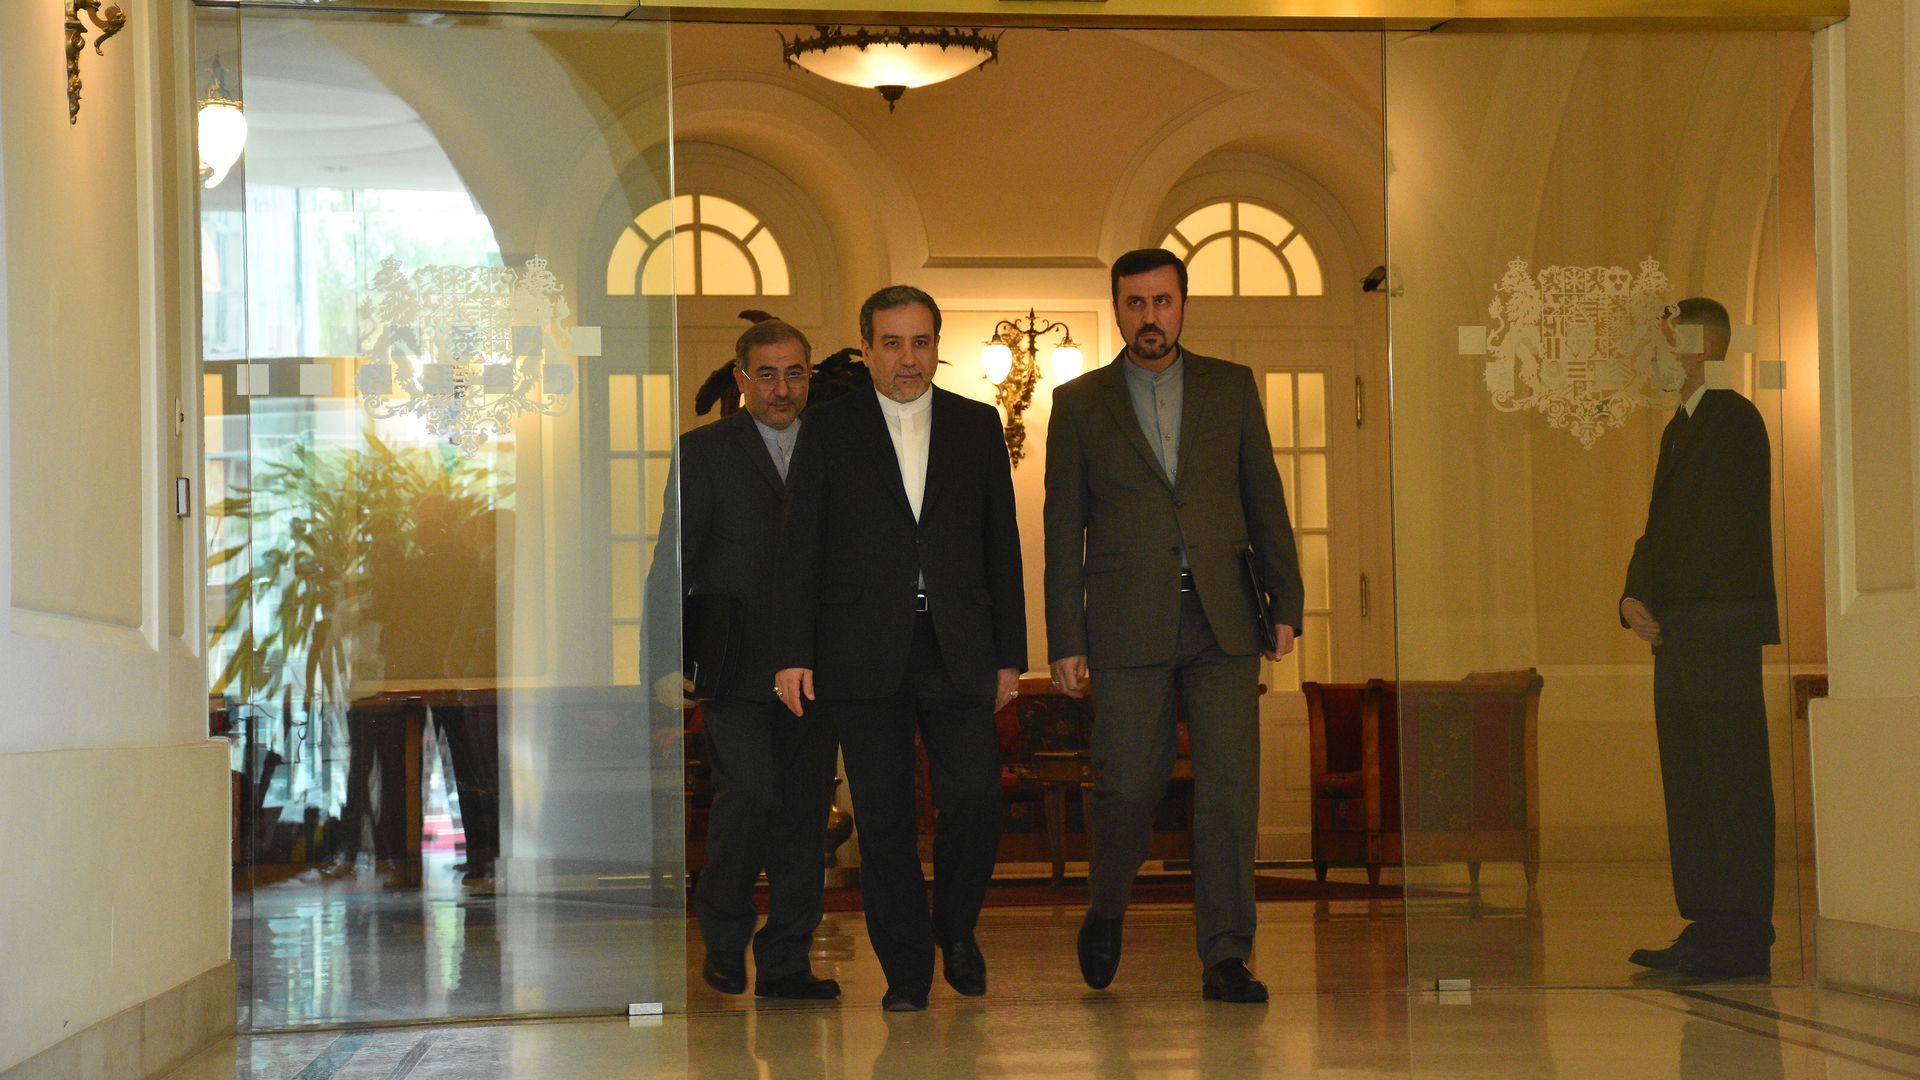 ranian Deputy Foreign Minister Abbas Araghchi (2nd L) arrives to make a speech after attending Joint Comprehensive Plan of Action (JCPOA) meeting.